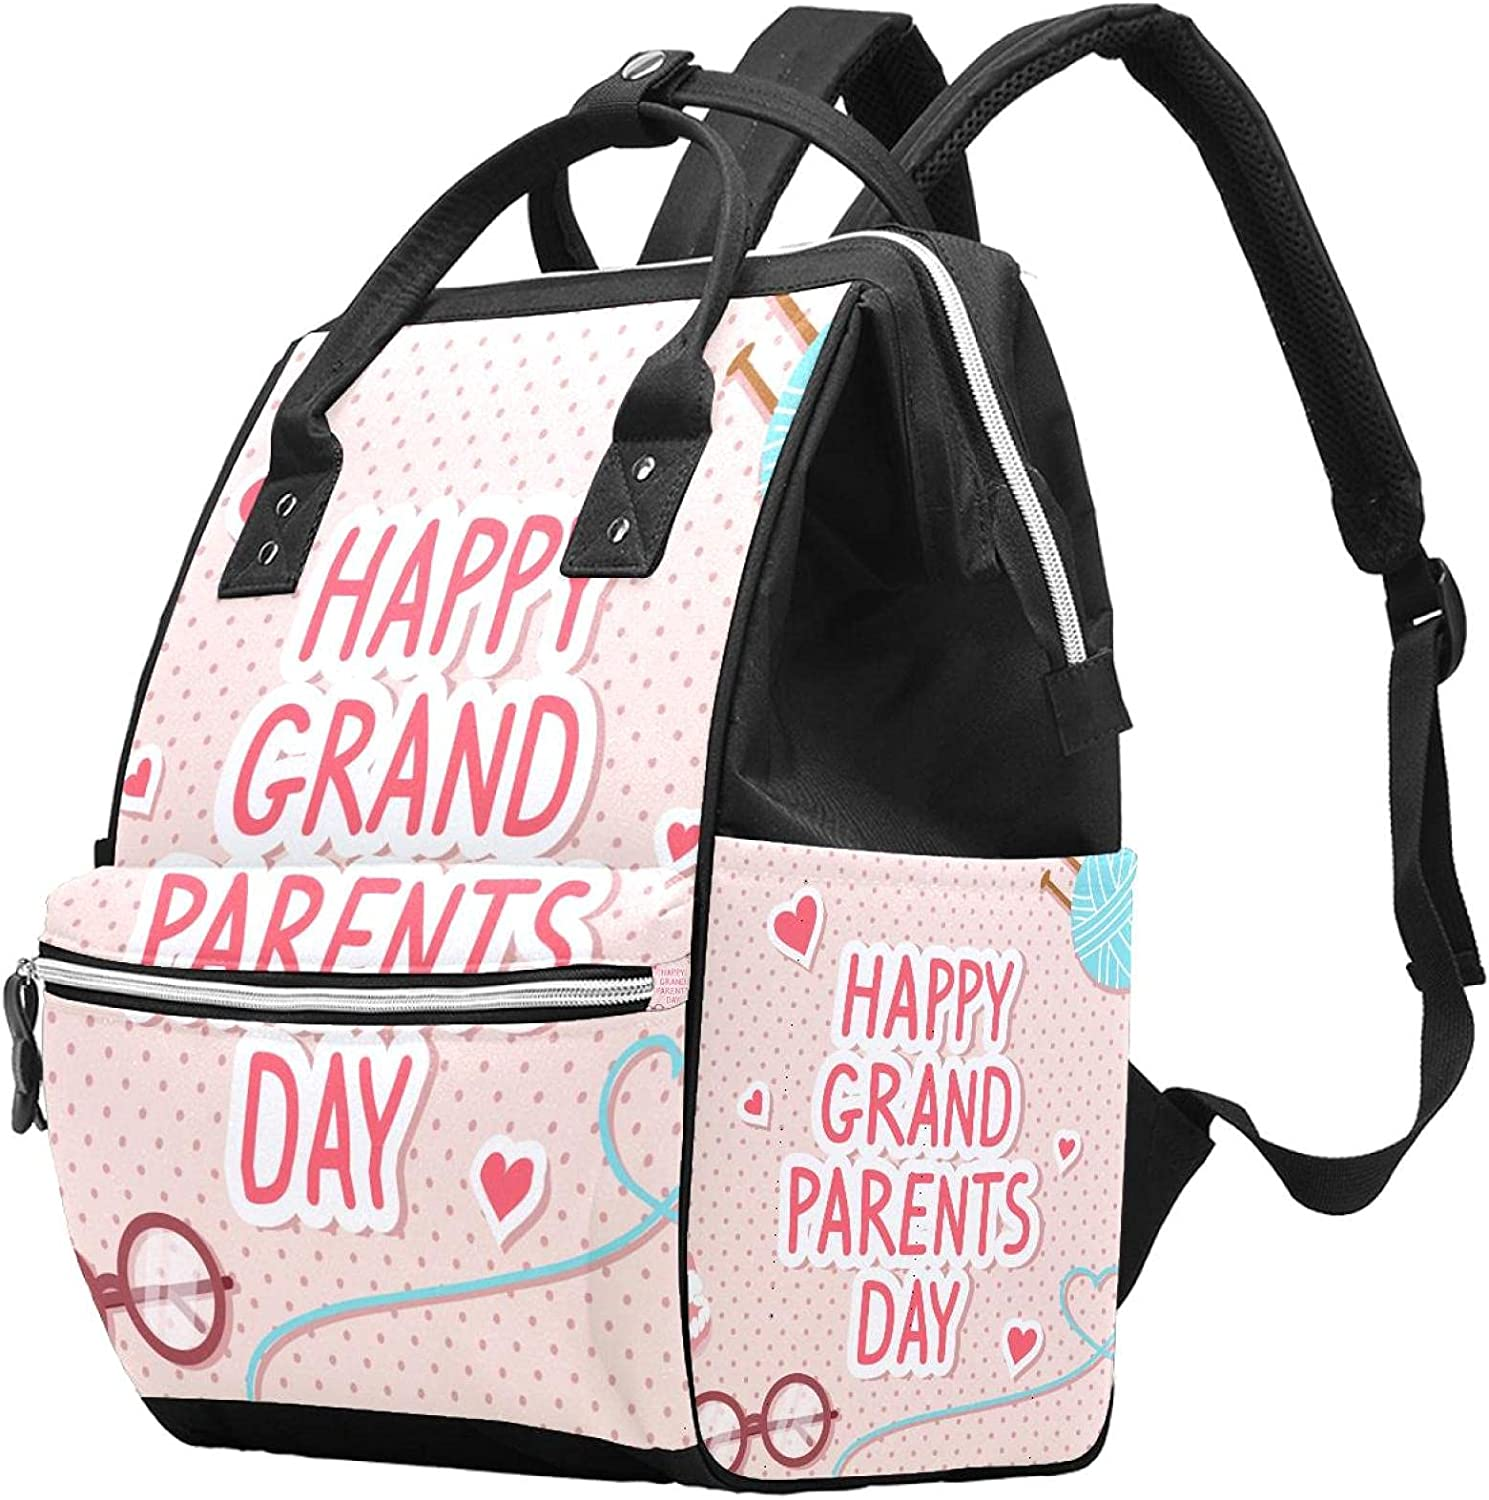 Backpacks Diaper Bag At the price Cheap super special price of surprise Laptop Notebook Travel Hiking Dayp Rucksack